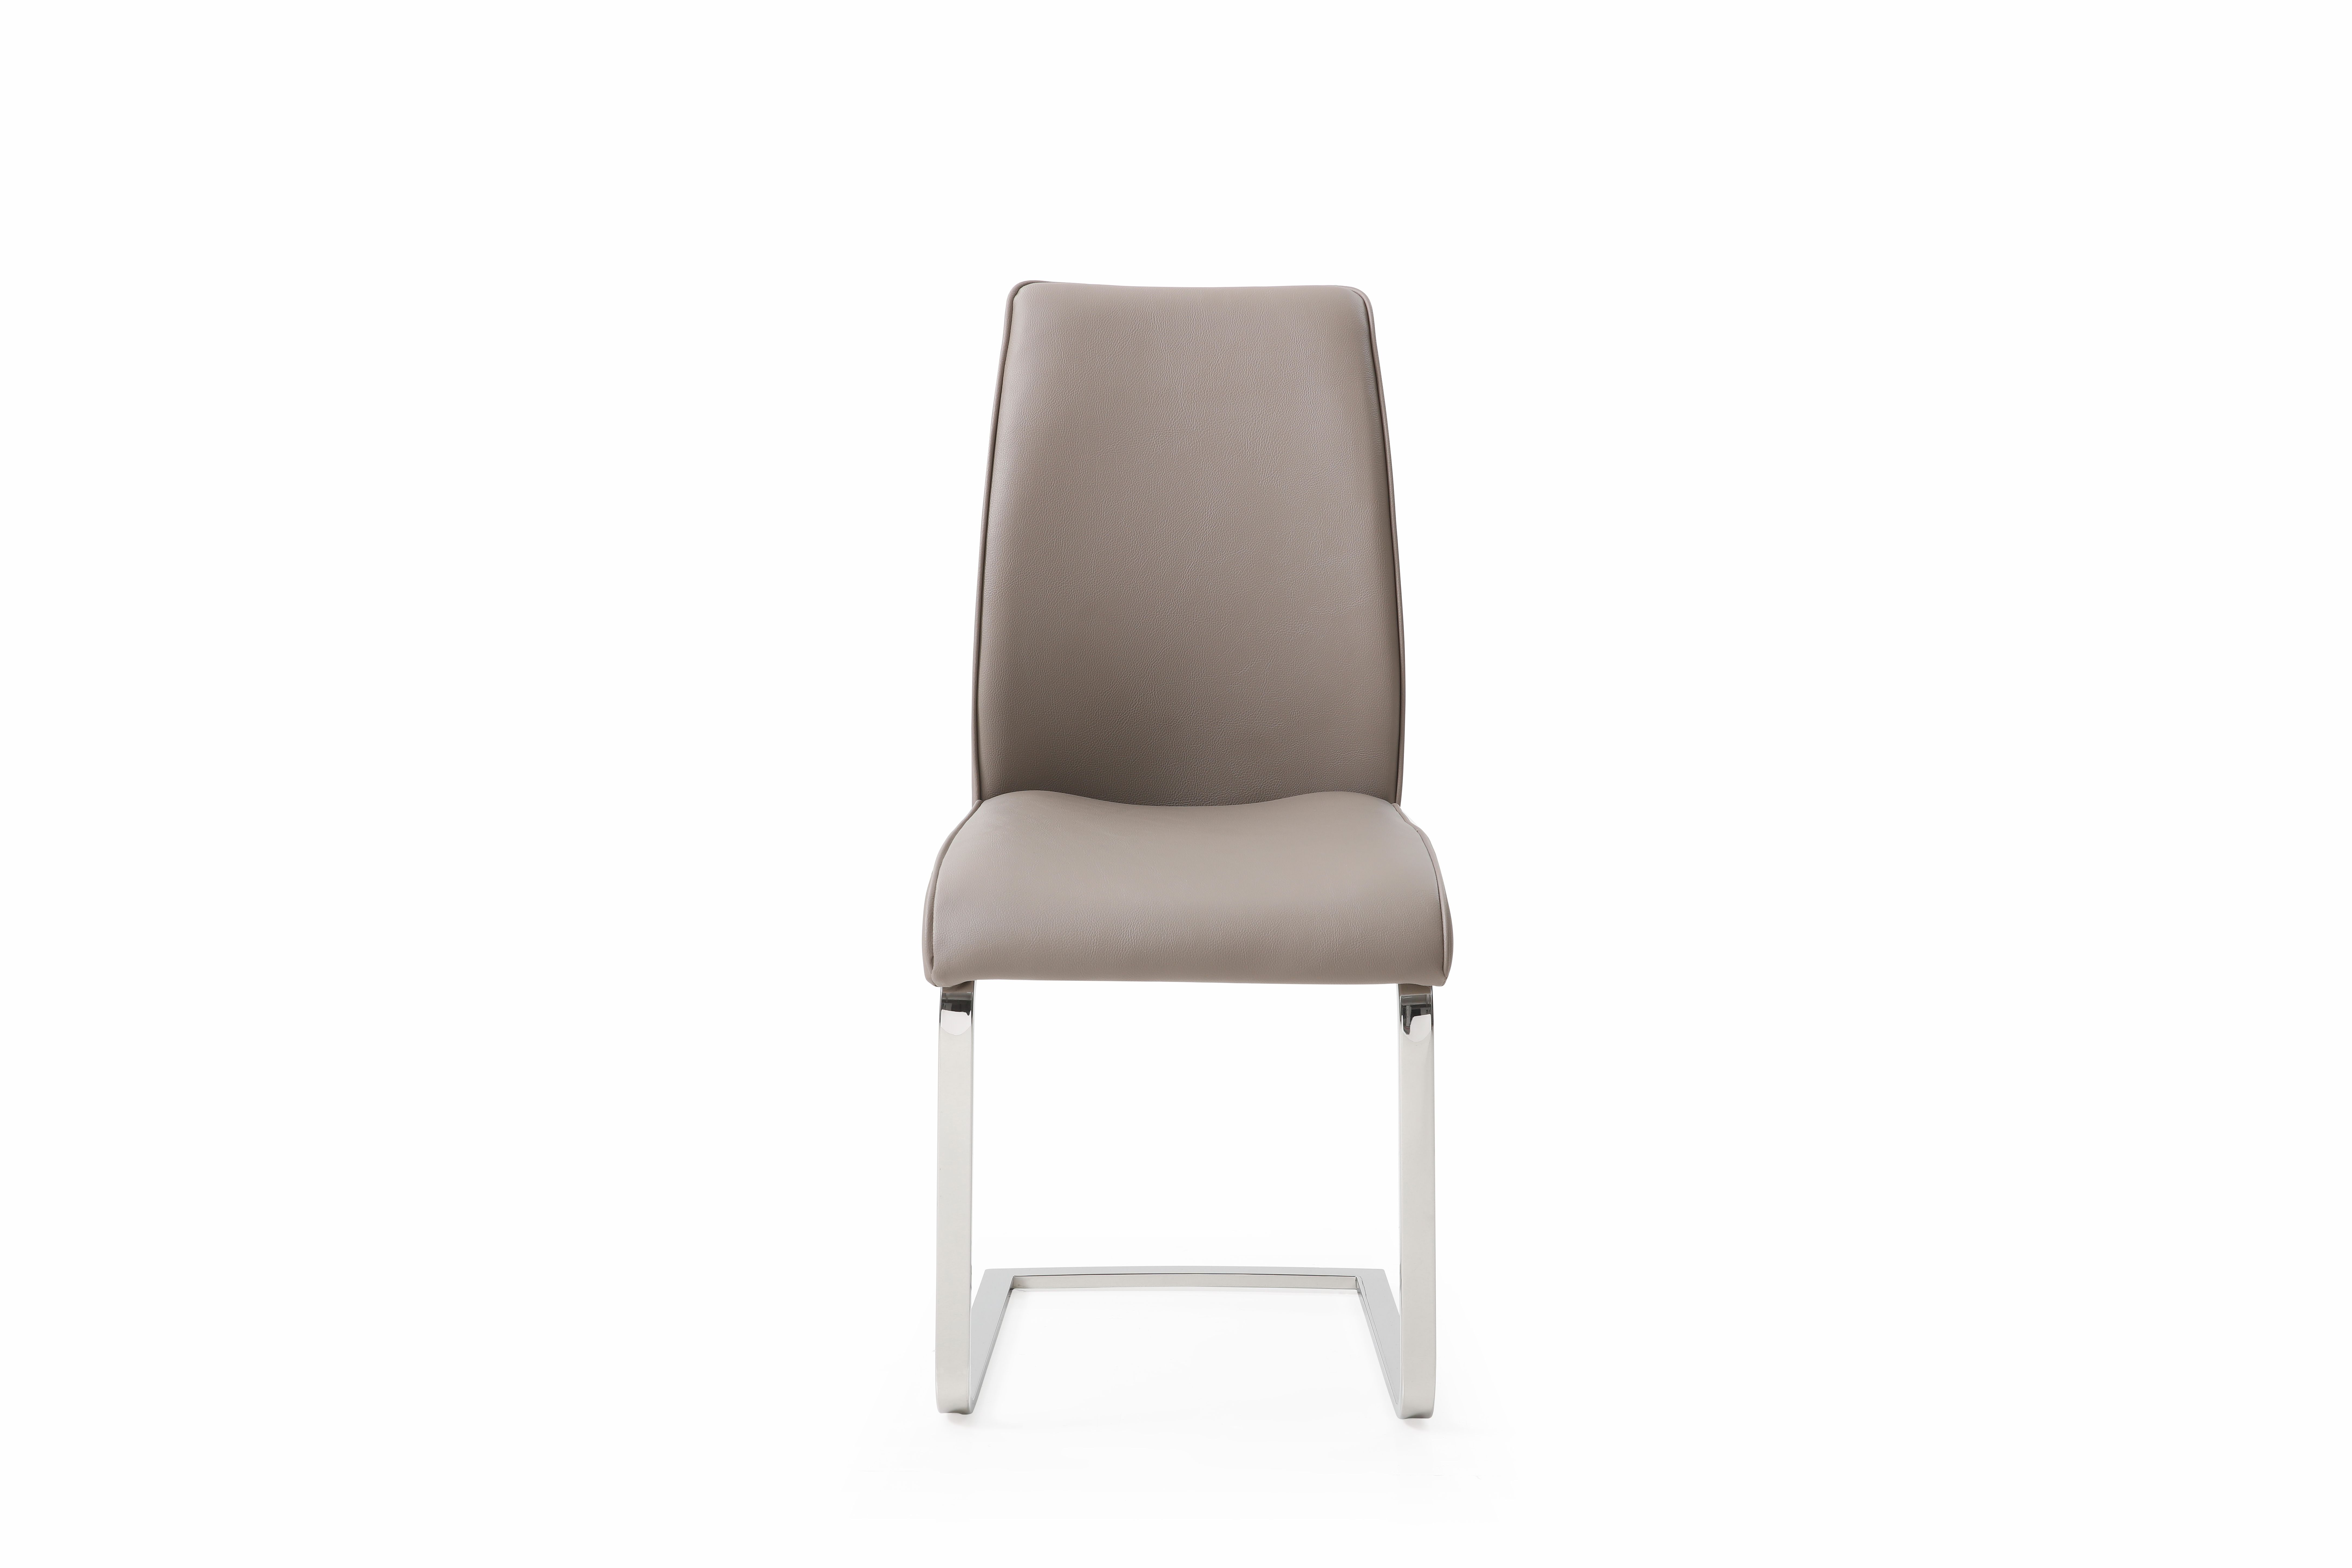 whiteline katrina set of 2 dining chair in warm grey faux leather dc1628p-gry